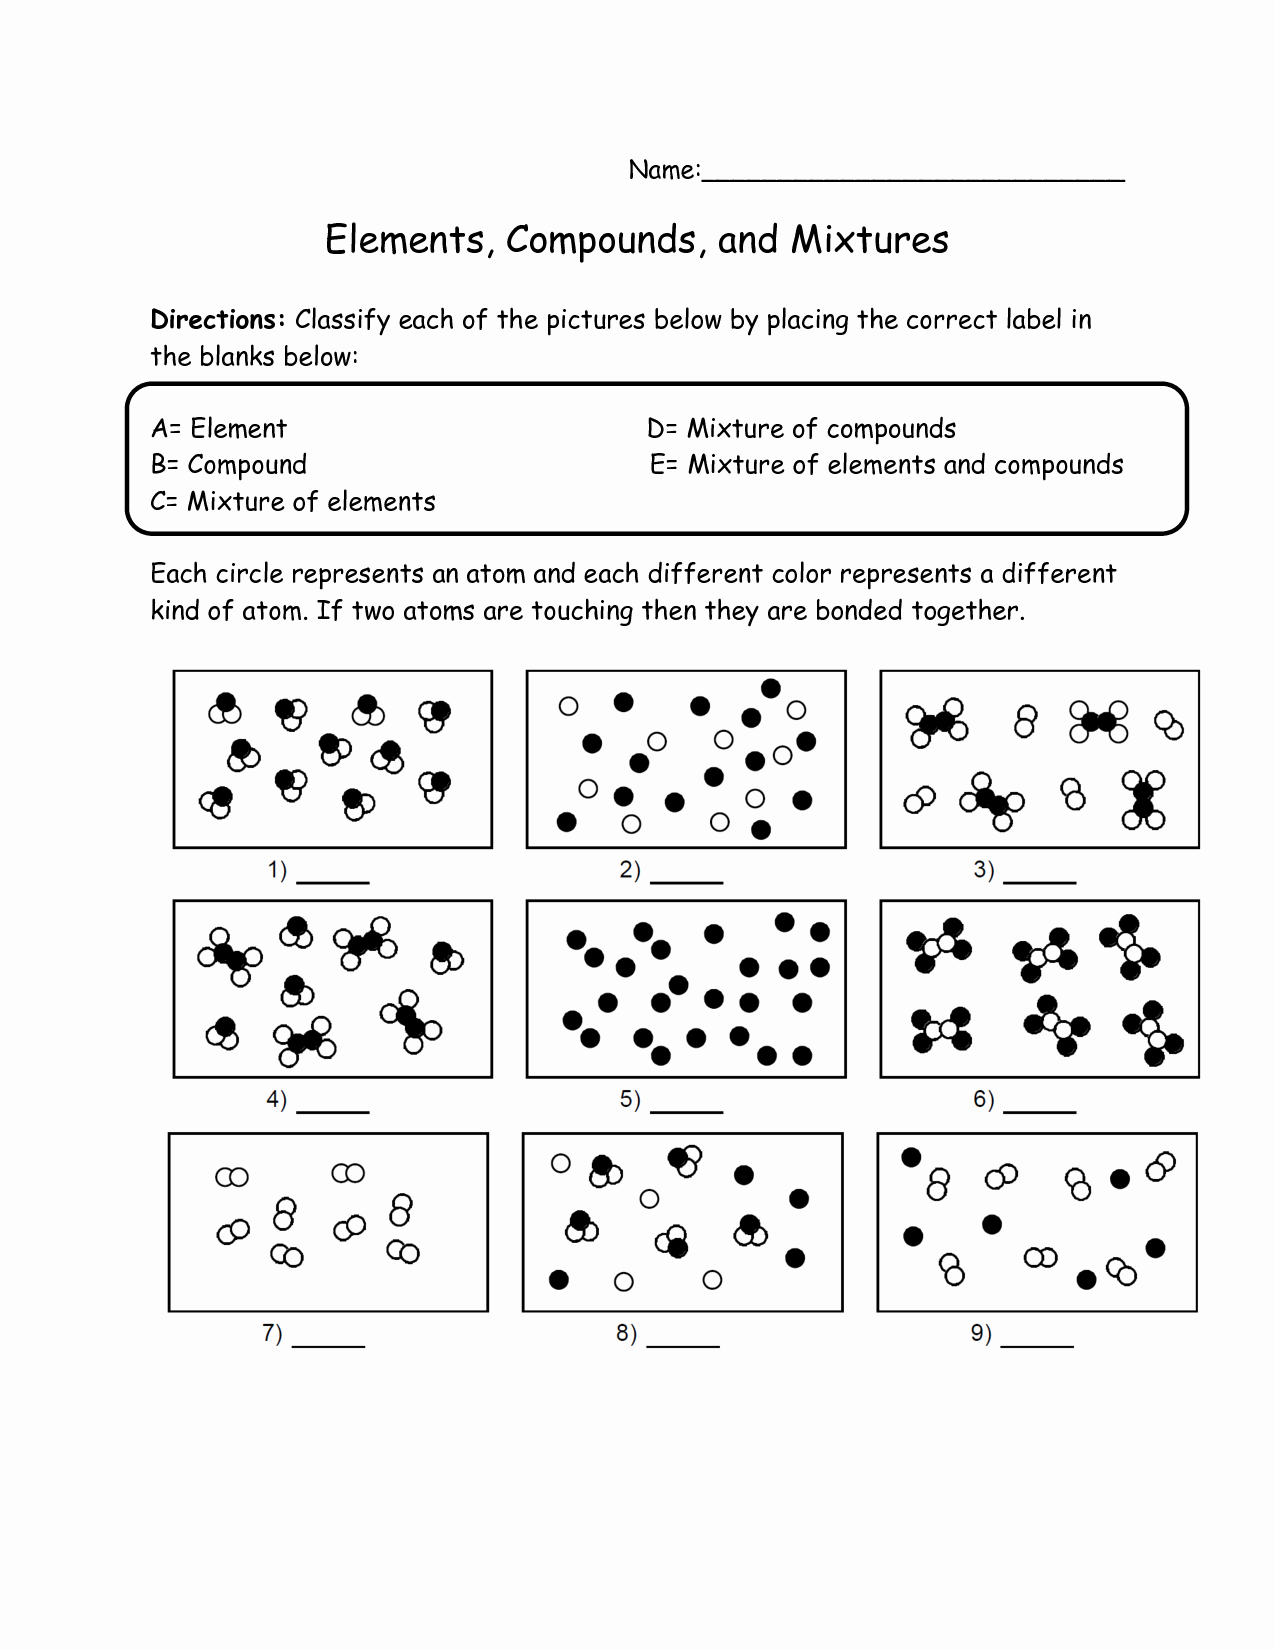 Elements Compounds and Mixtures Worksheet New 17 Best Of Elements Pounds and Mixtures